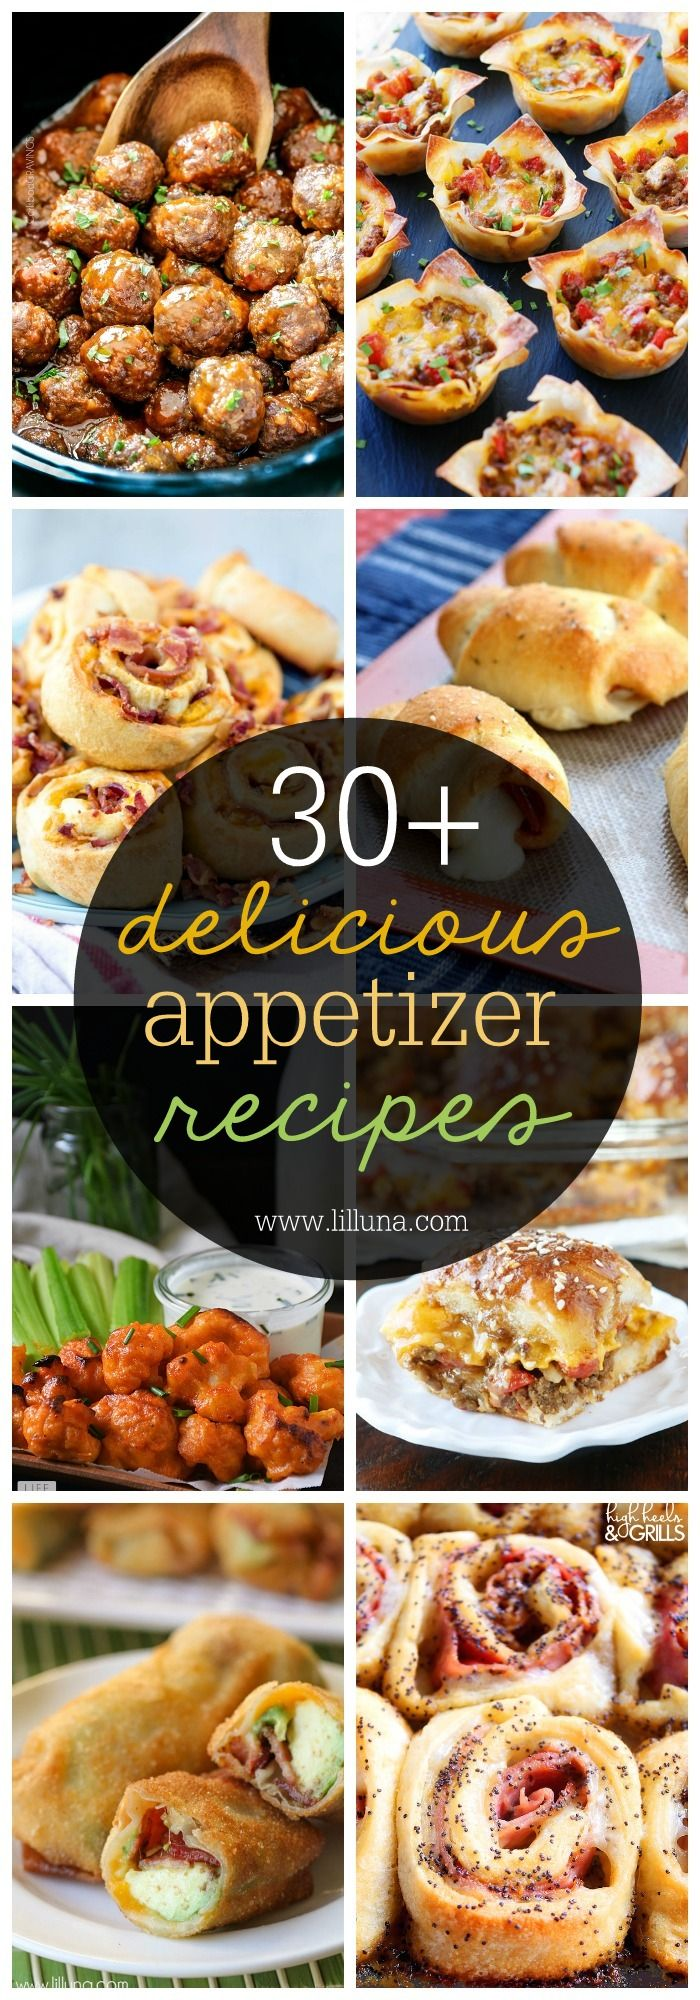 72 best Recipes Appetizers images on Pinterest Cooking food